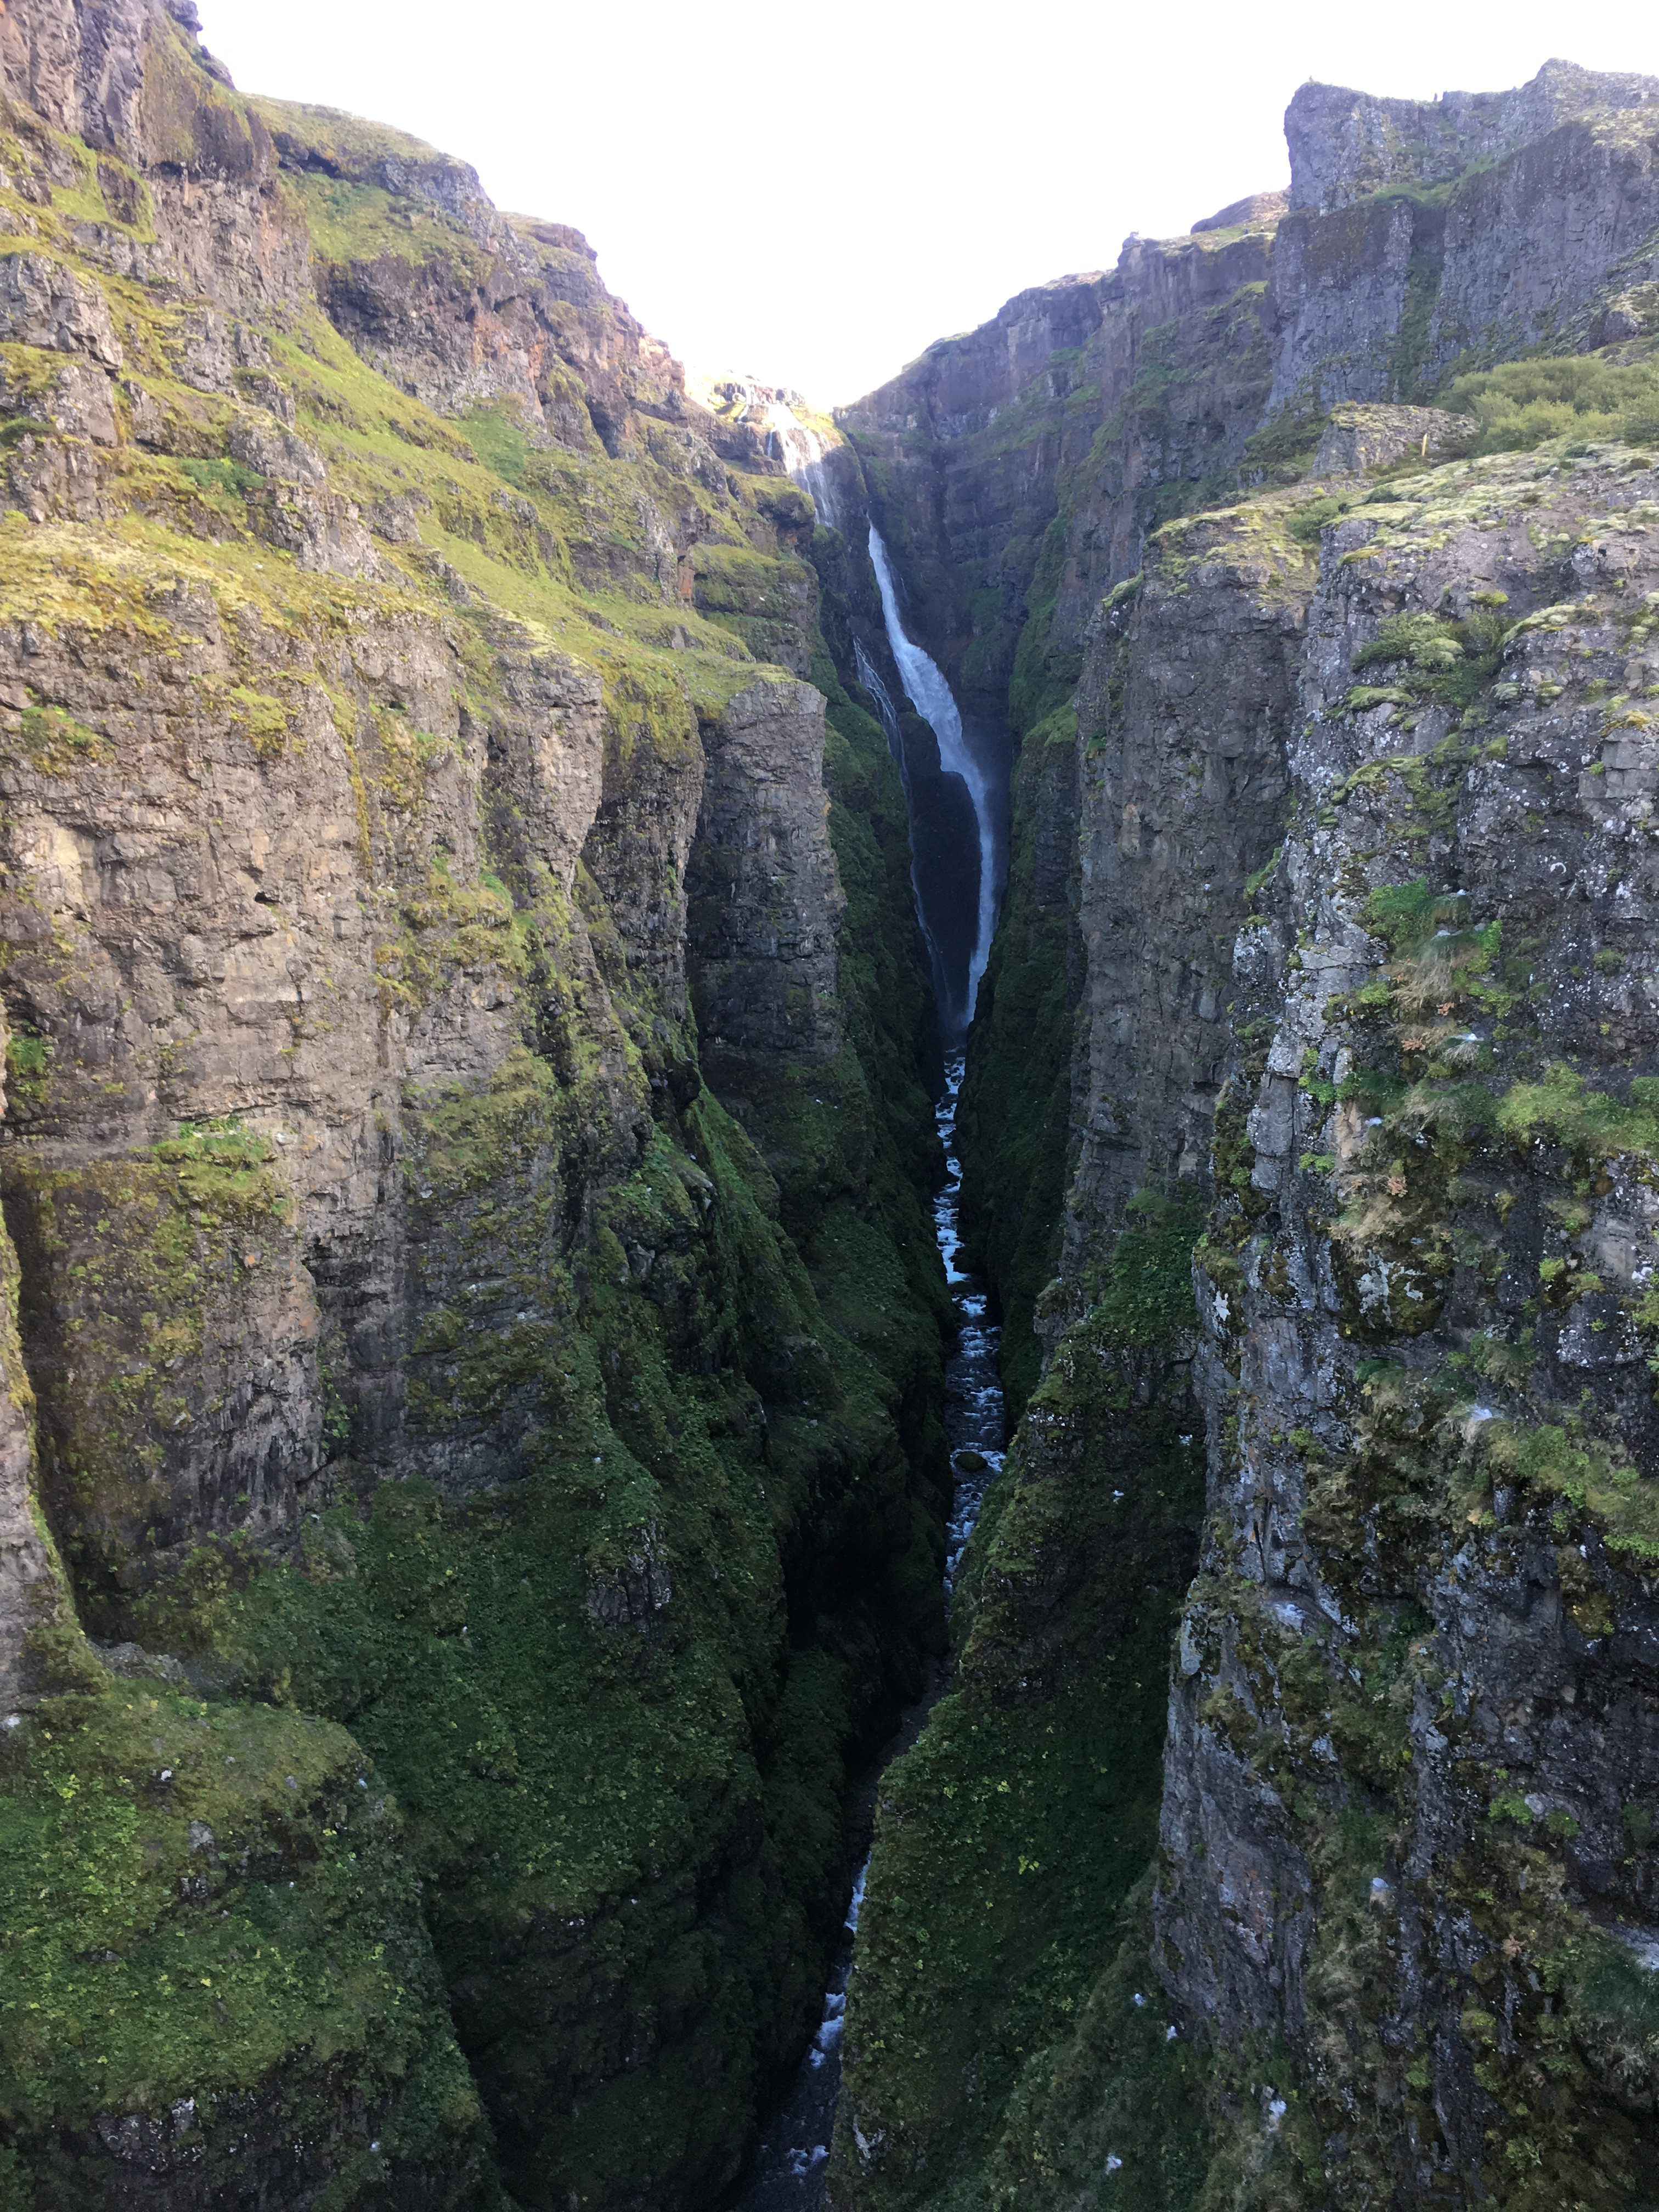 From Glymur Falls Lookout Point